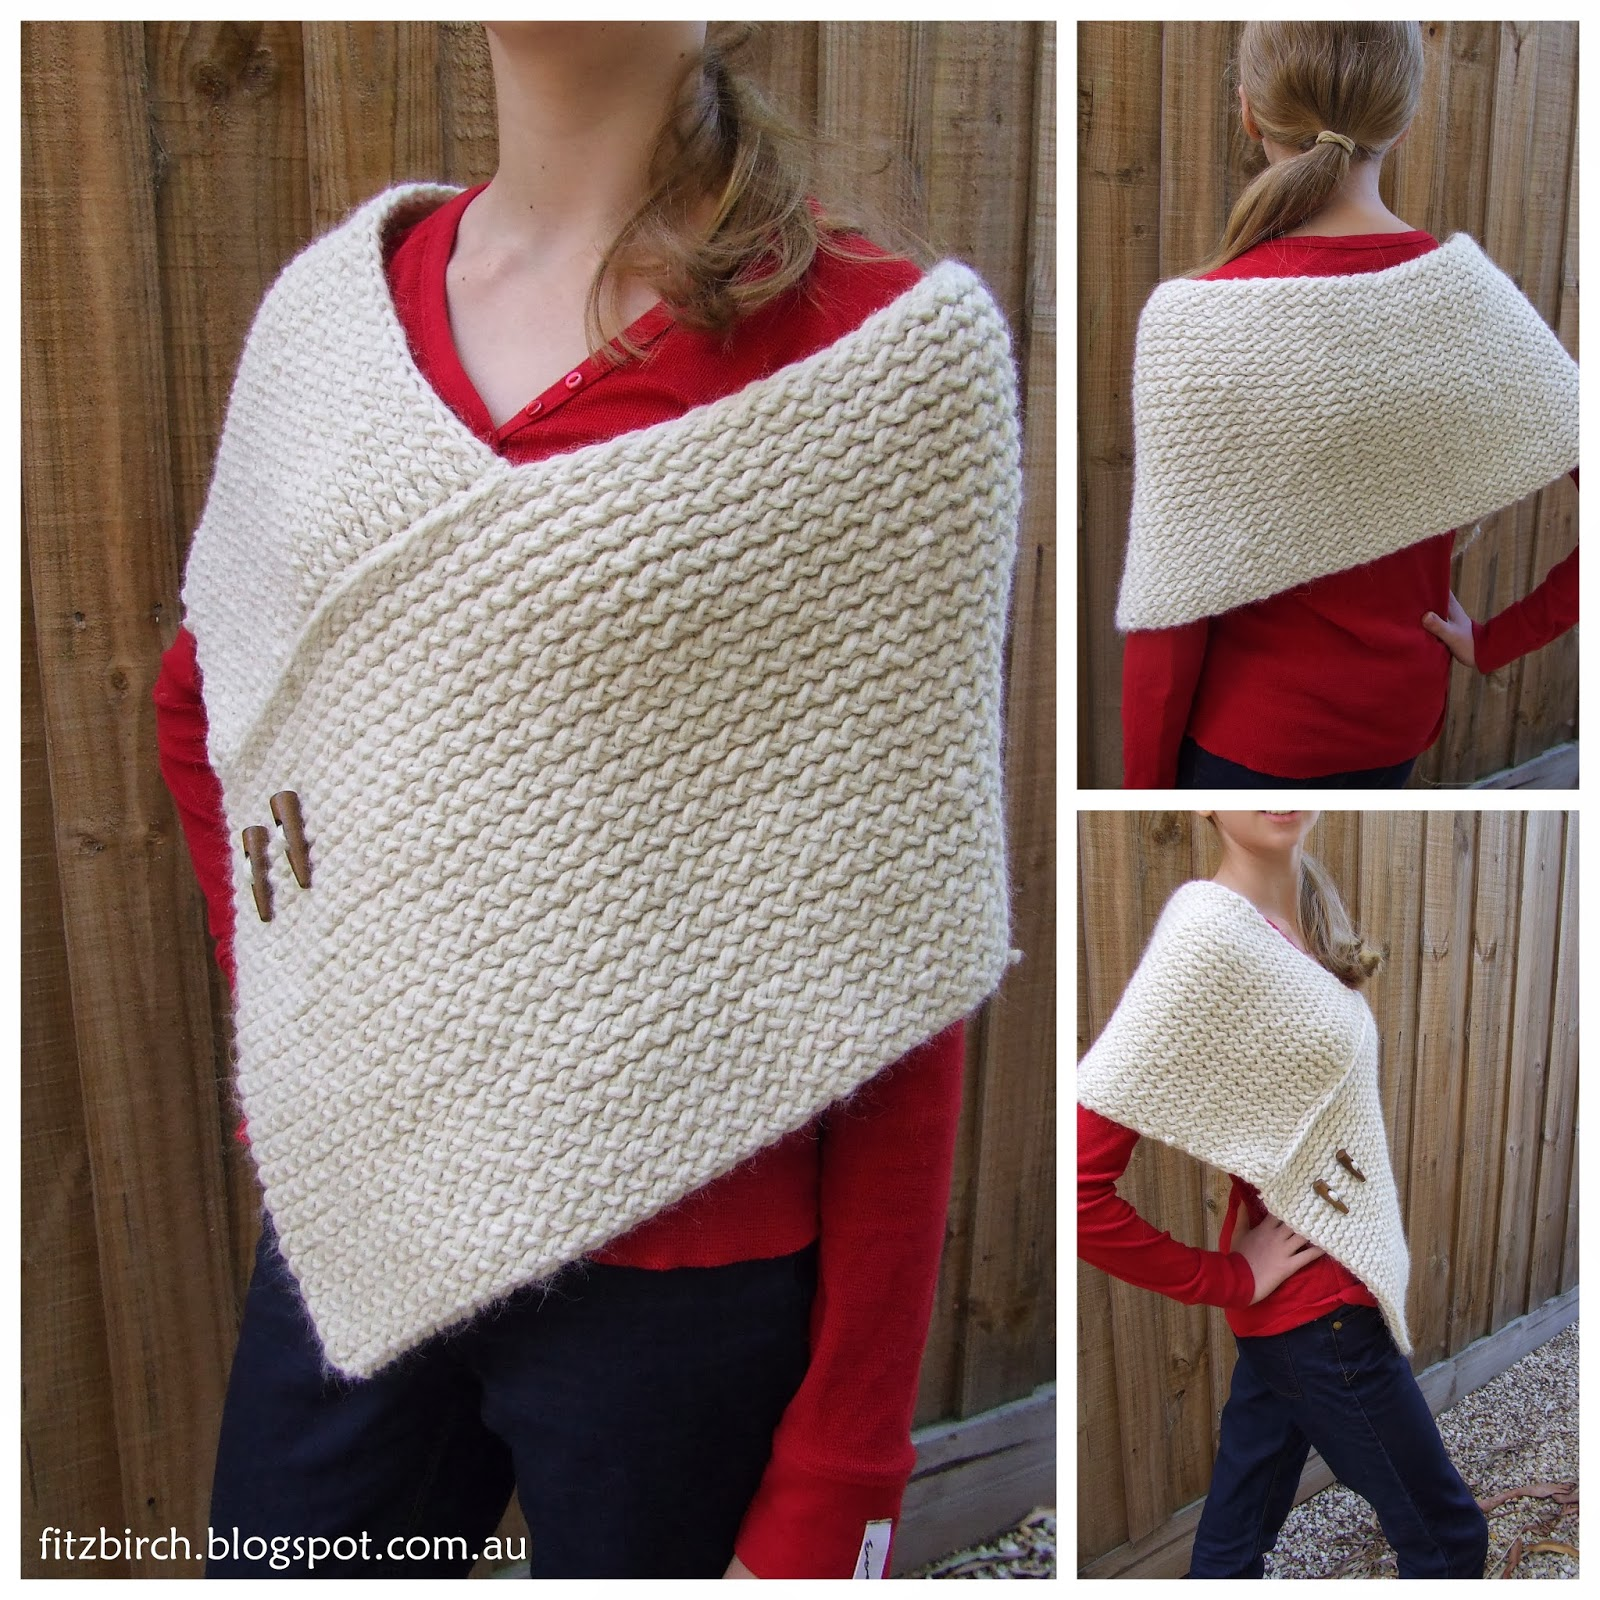 FitzBirch Crafts: Loom Knit Wrap